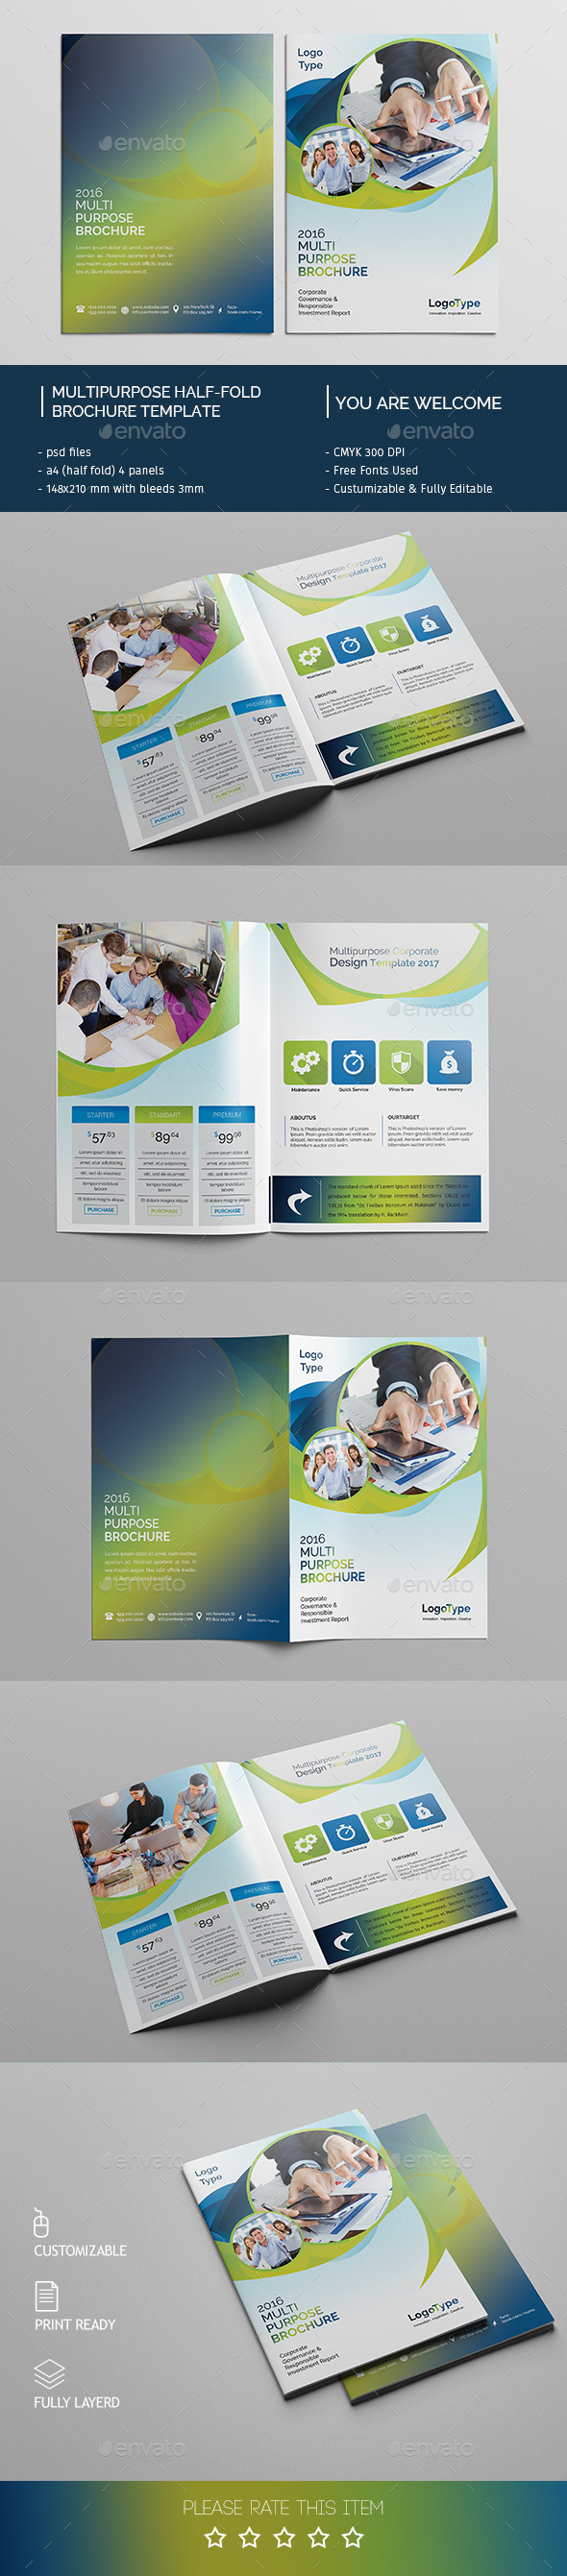 Corporate Bi-fold Brochure Template 07 - Corporate Brochures